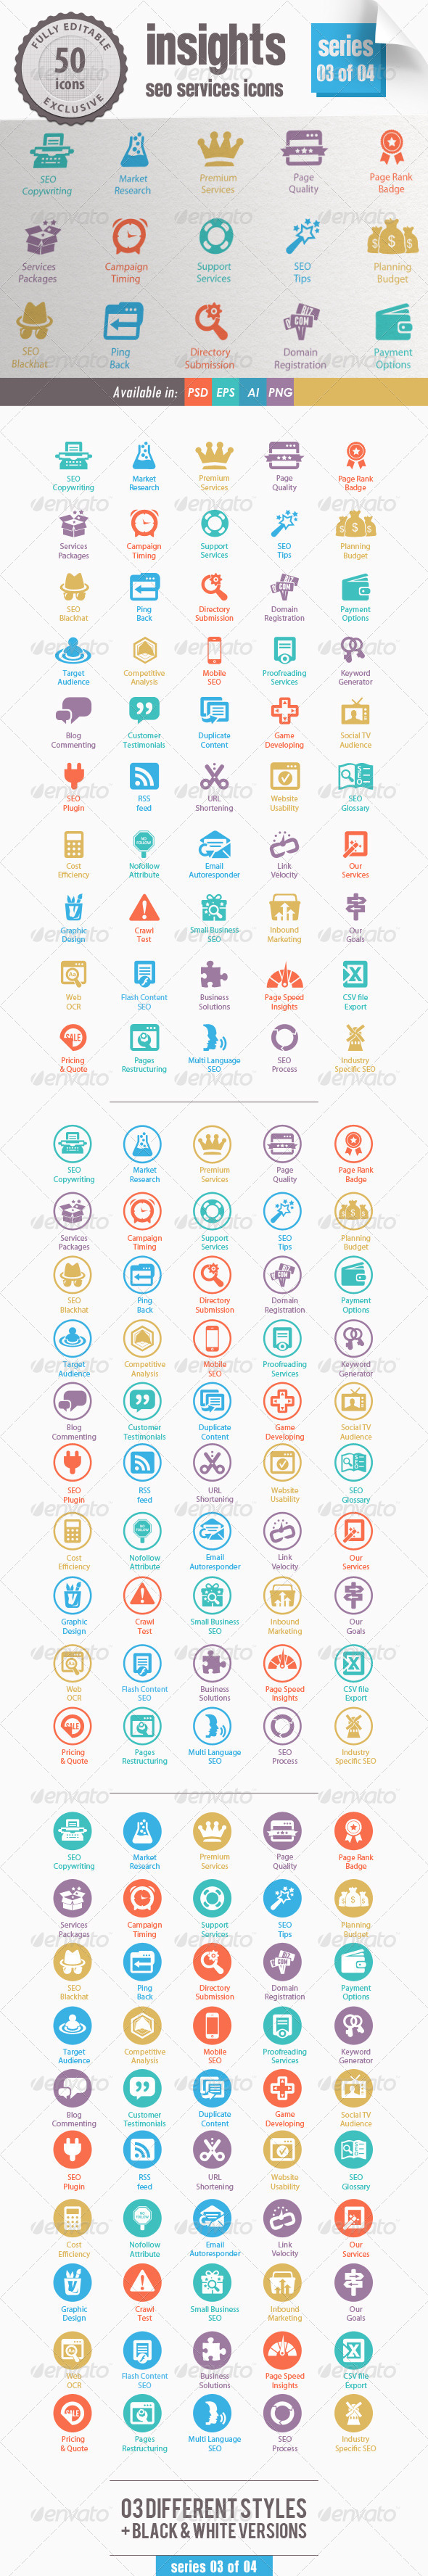 Insights SEO Services Icons - Series 03 of 04 - Web Icons